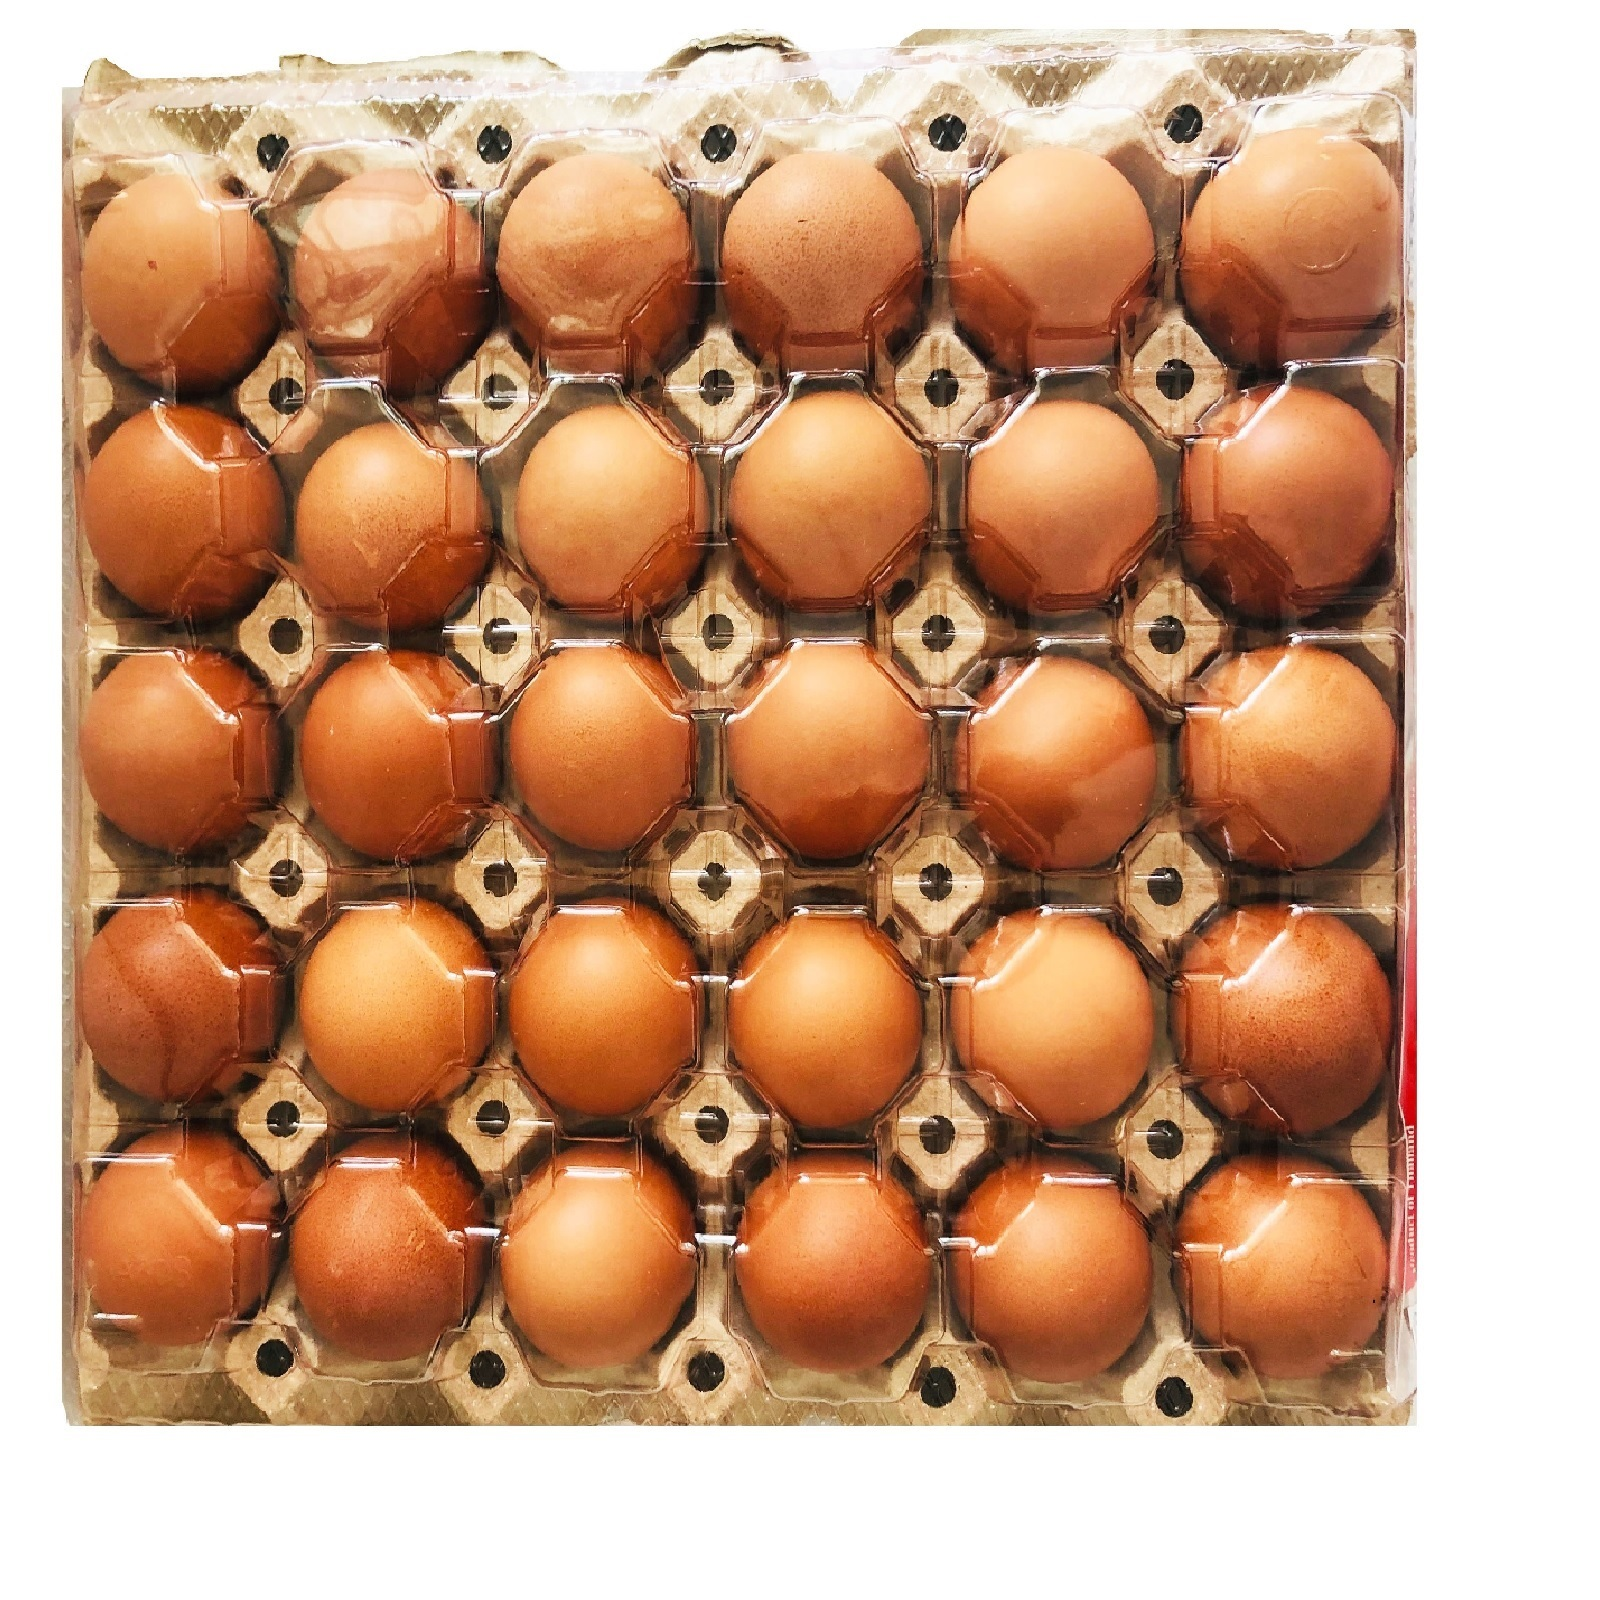 kyh fresh brown egg 30's